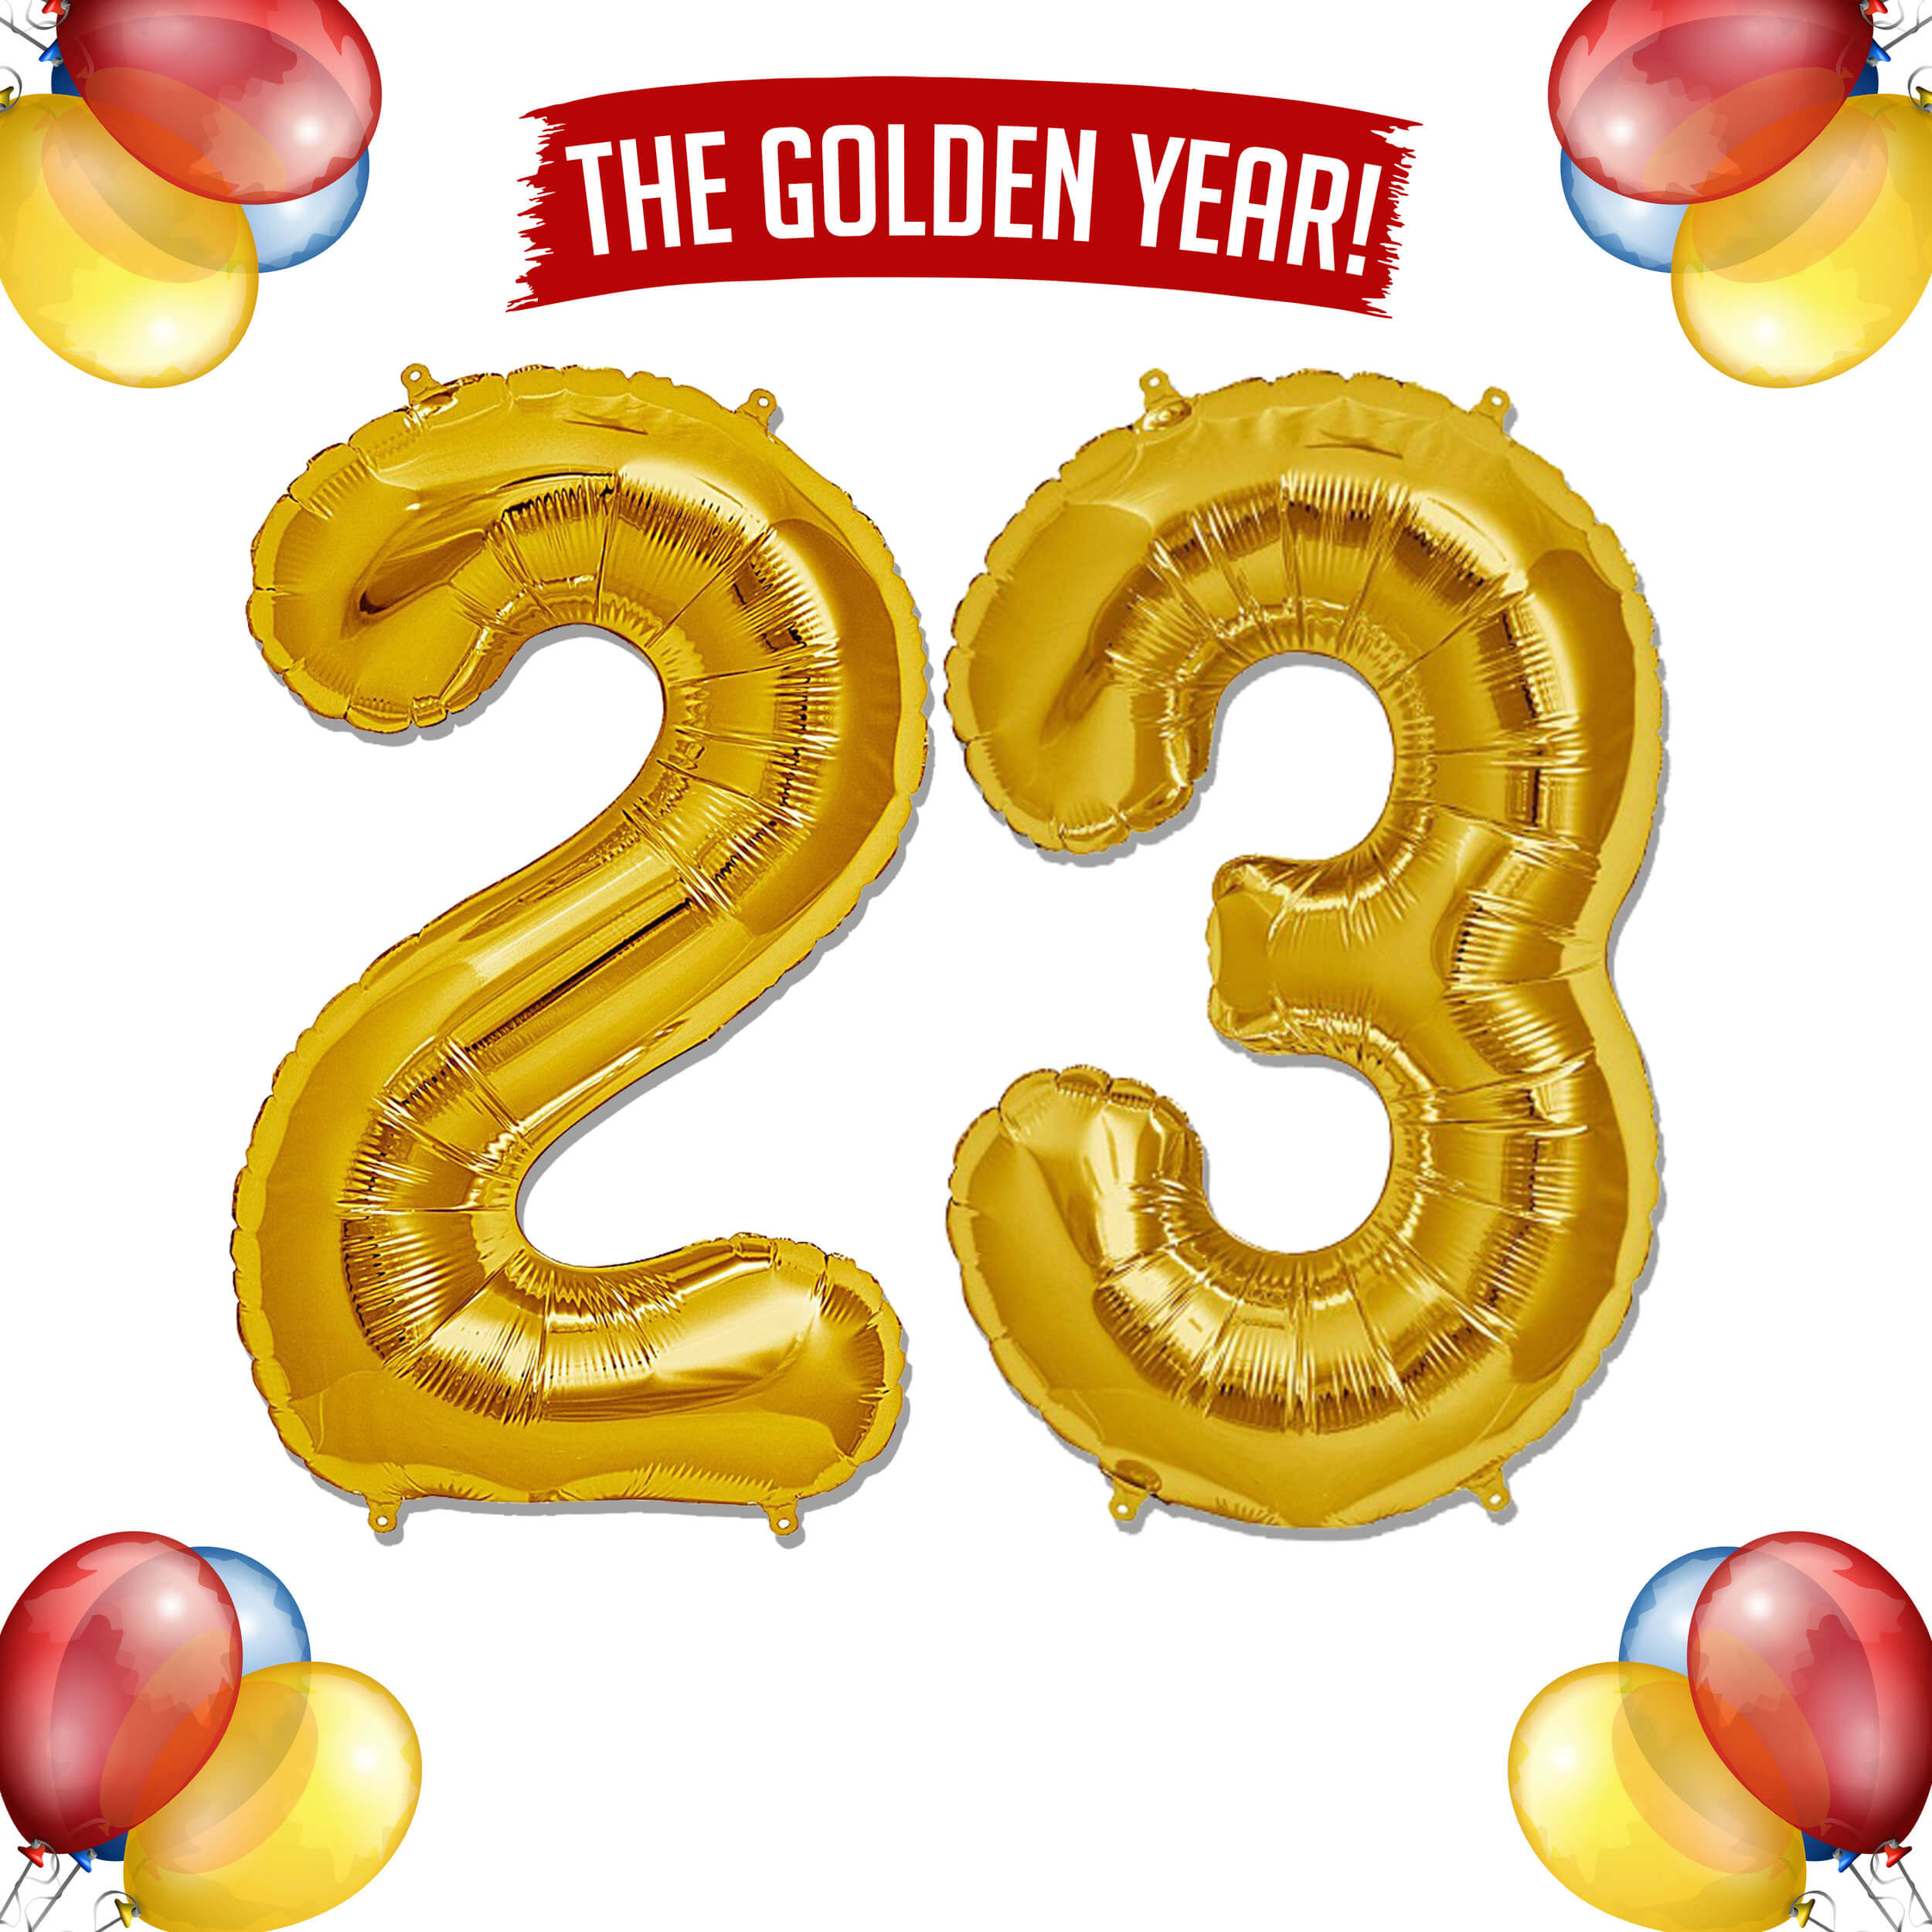 Oprah Winfrey, Issa Rae, Tristan Walker, and Morgan Freeman were not millionaires in their 20s. It's my 23rd birthday, and neither am I.